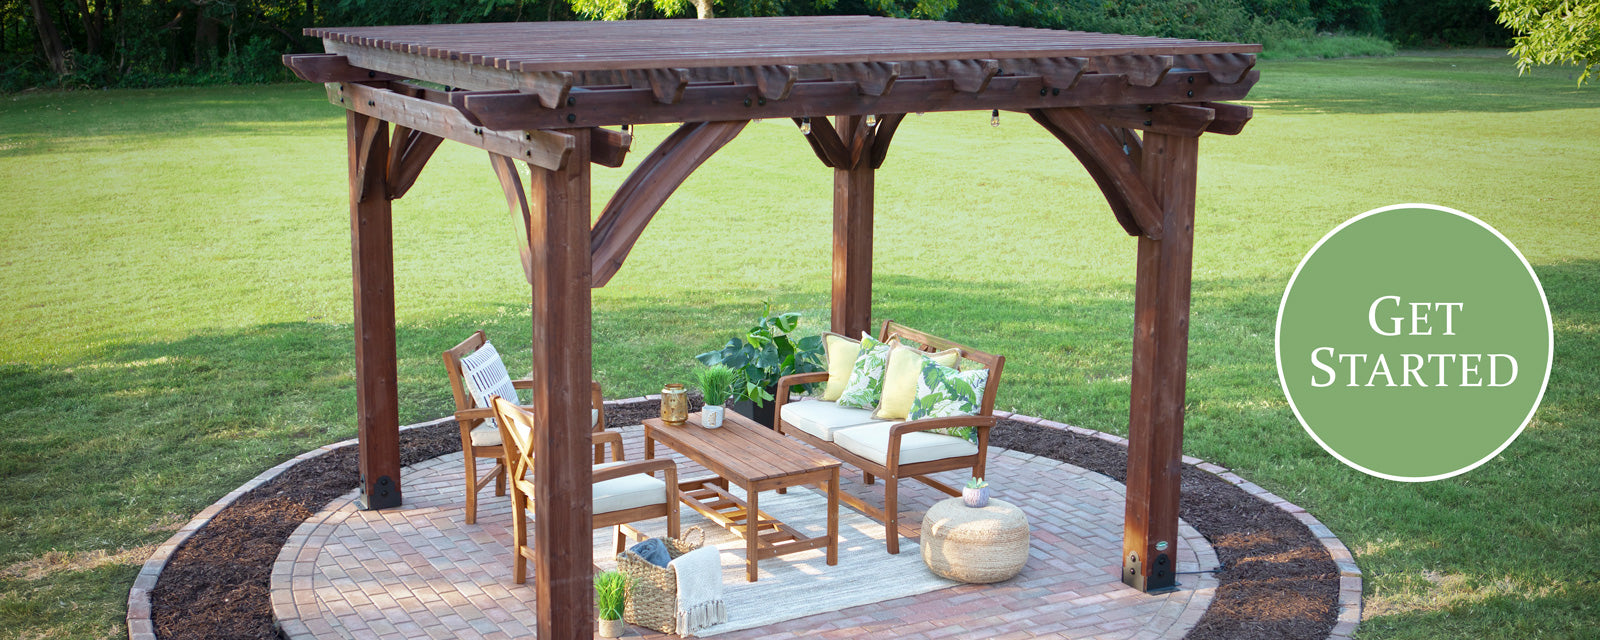 Leisure Time Products Pergolas and Gazebos